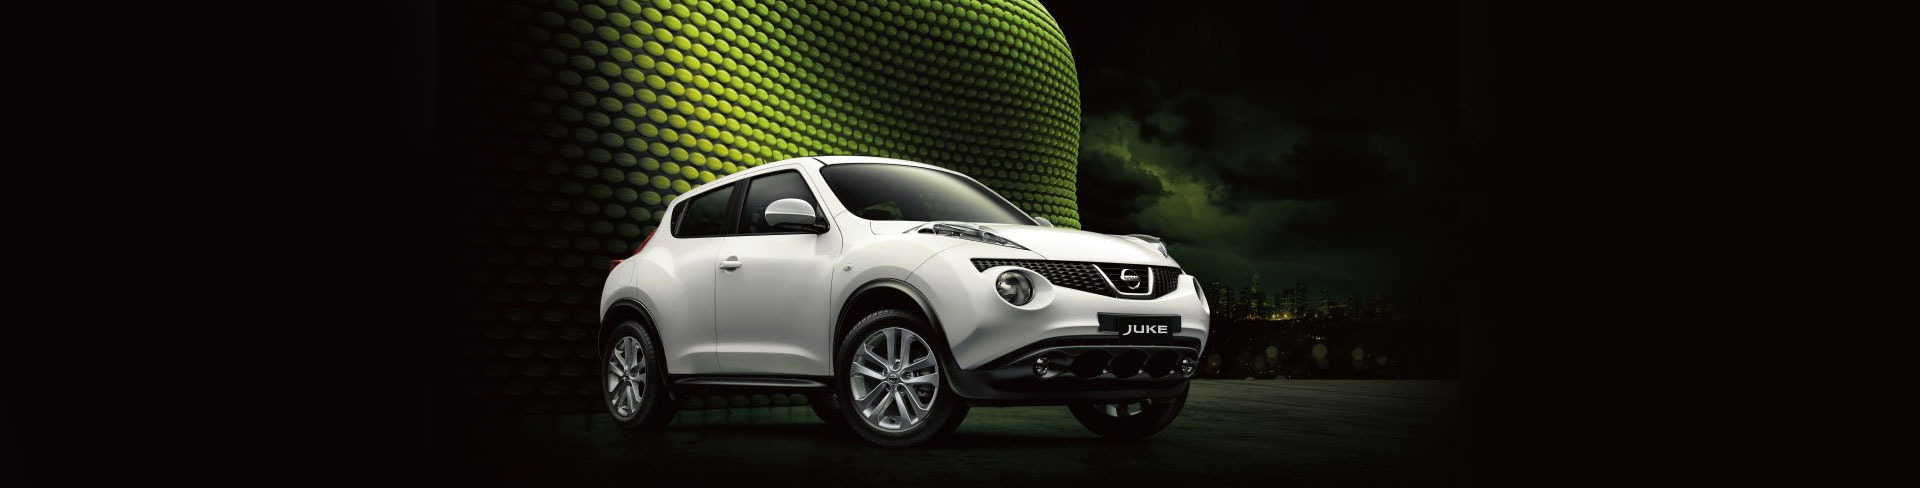 John Page Motors | Nissan Juke | New and Used Nissan Vehicles